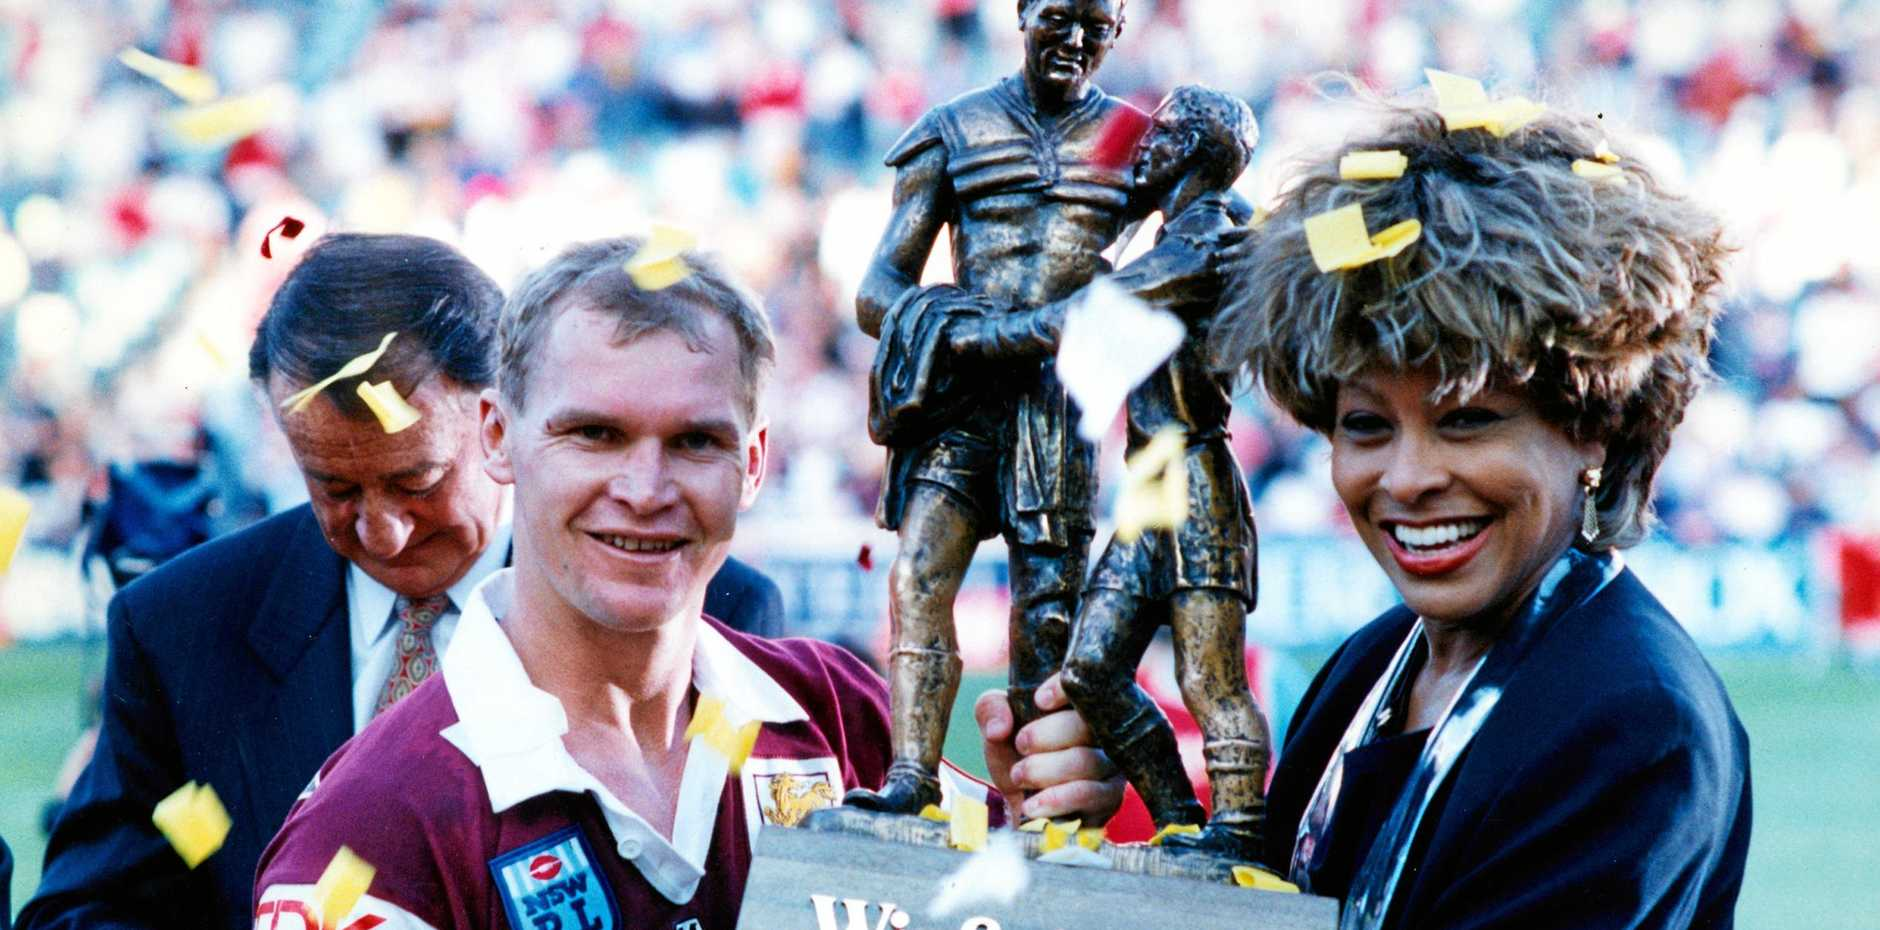 Brisbane captain Alfie Langer and American entertainer Tina Turner hold the Winfield Cup after the Broncos' grand final win in 1993 in Sydney